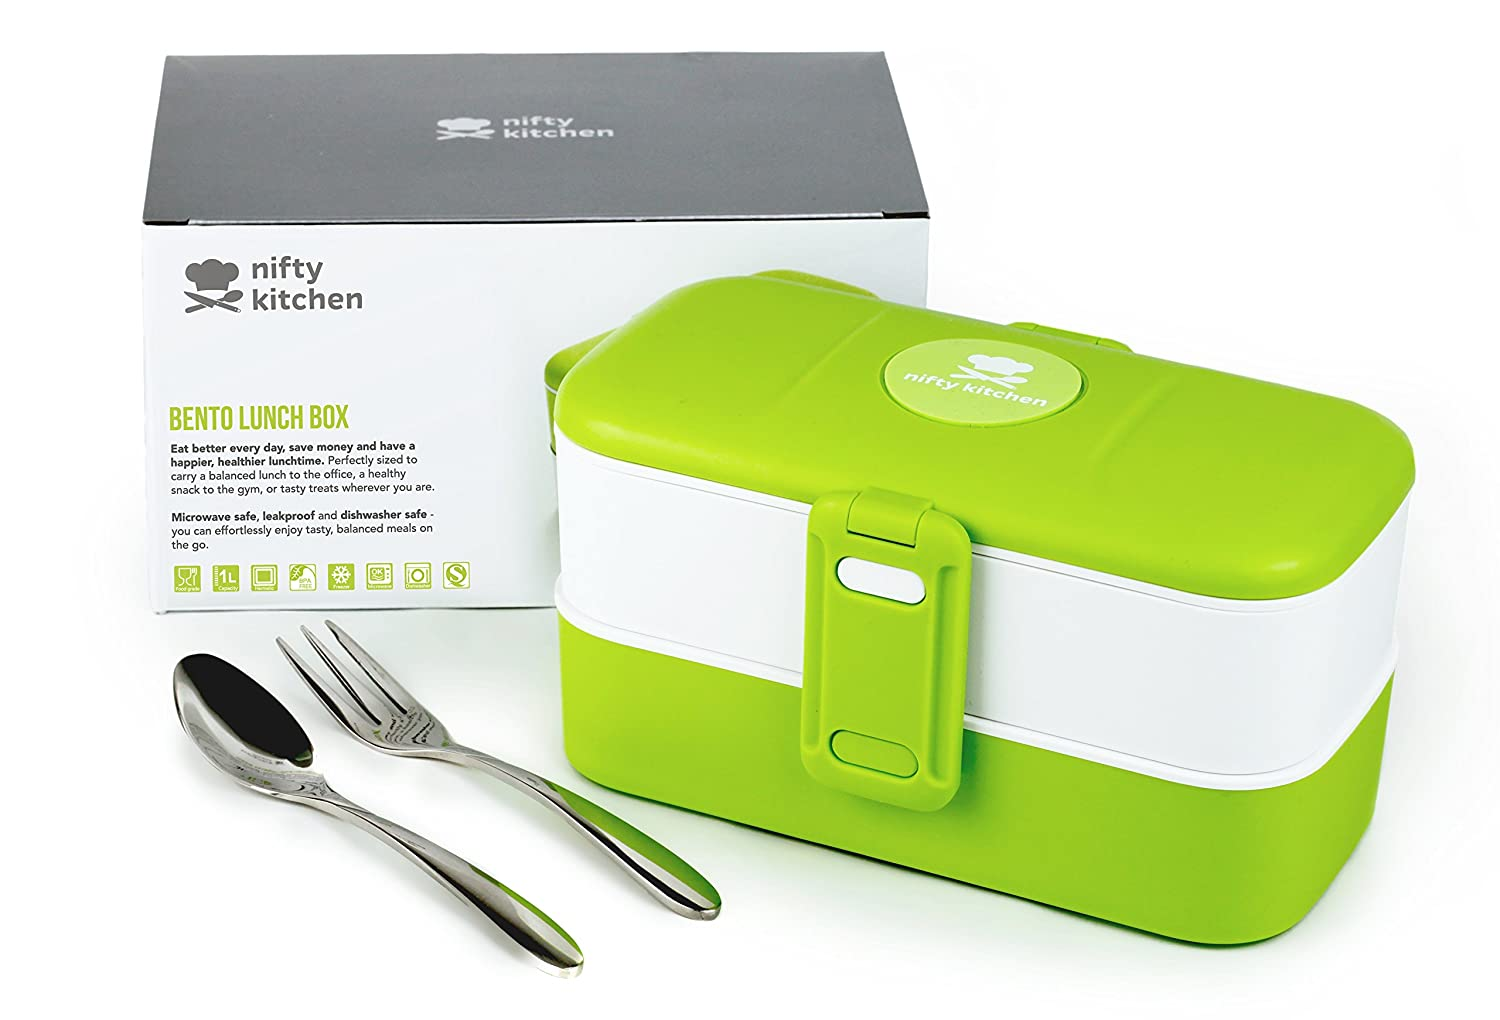 Bento Lunch Box - Microwave Safe for Adults & Kids - With LeakStopper Lids to Prevent Spills in Your Work or School Bag - 2 Compartments with Cutlery + Bonus Recipes eBook Nifty Kitchen